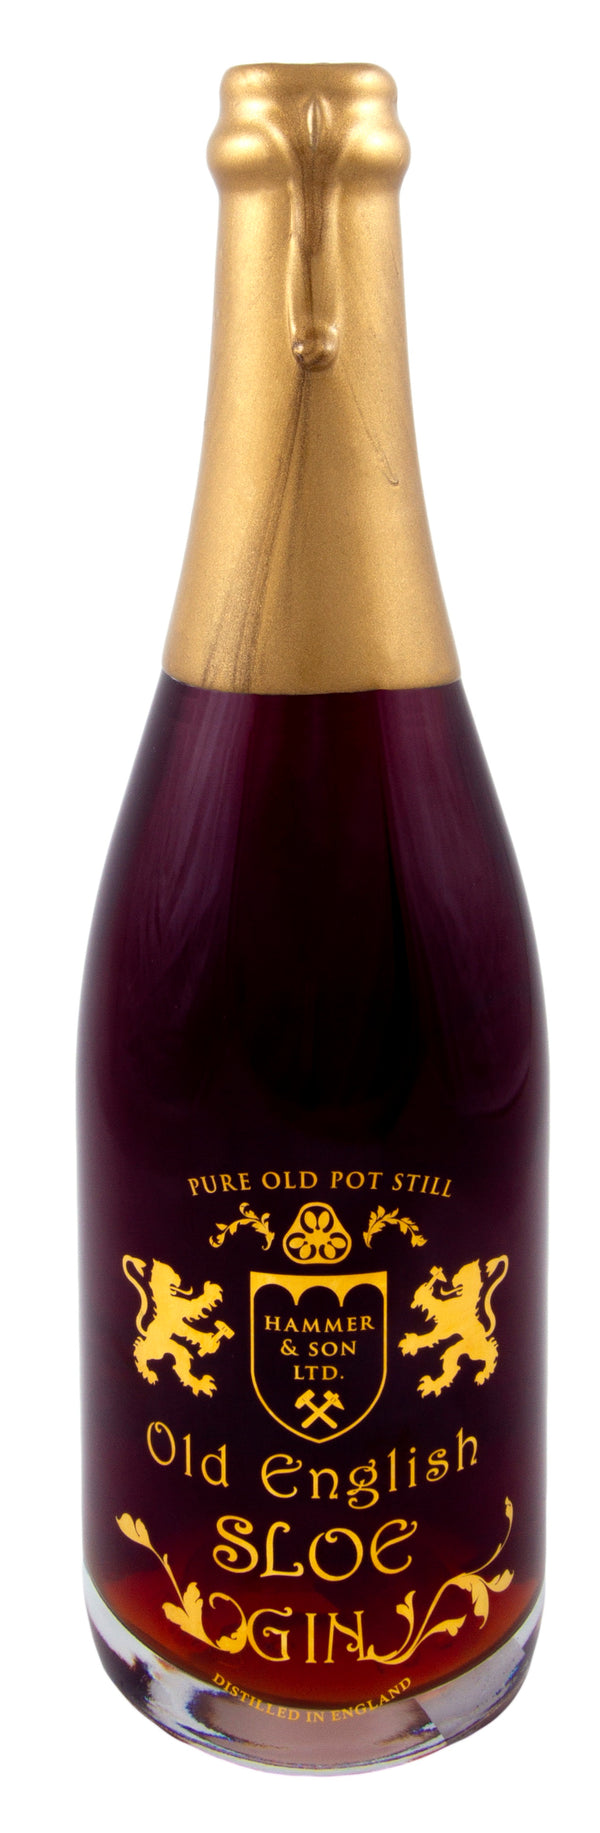 Old English Sloe Gin, 30%, 700ml